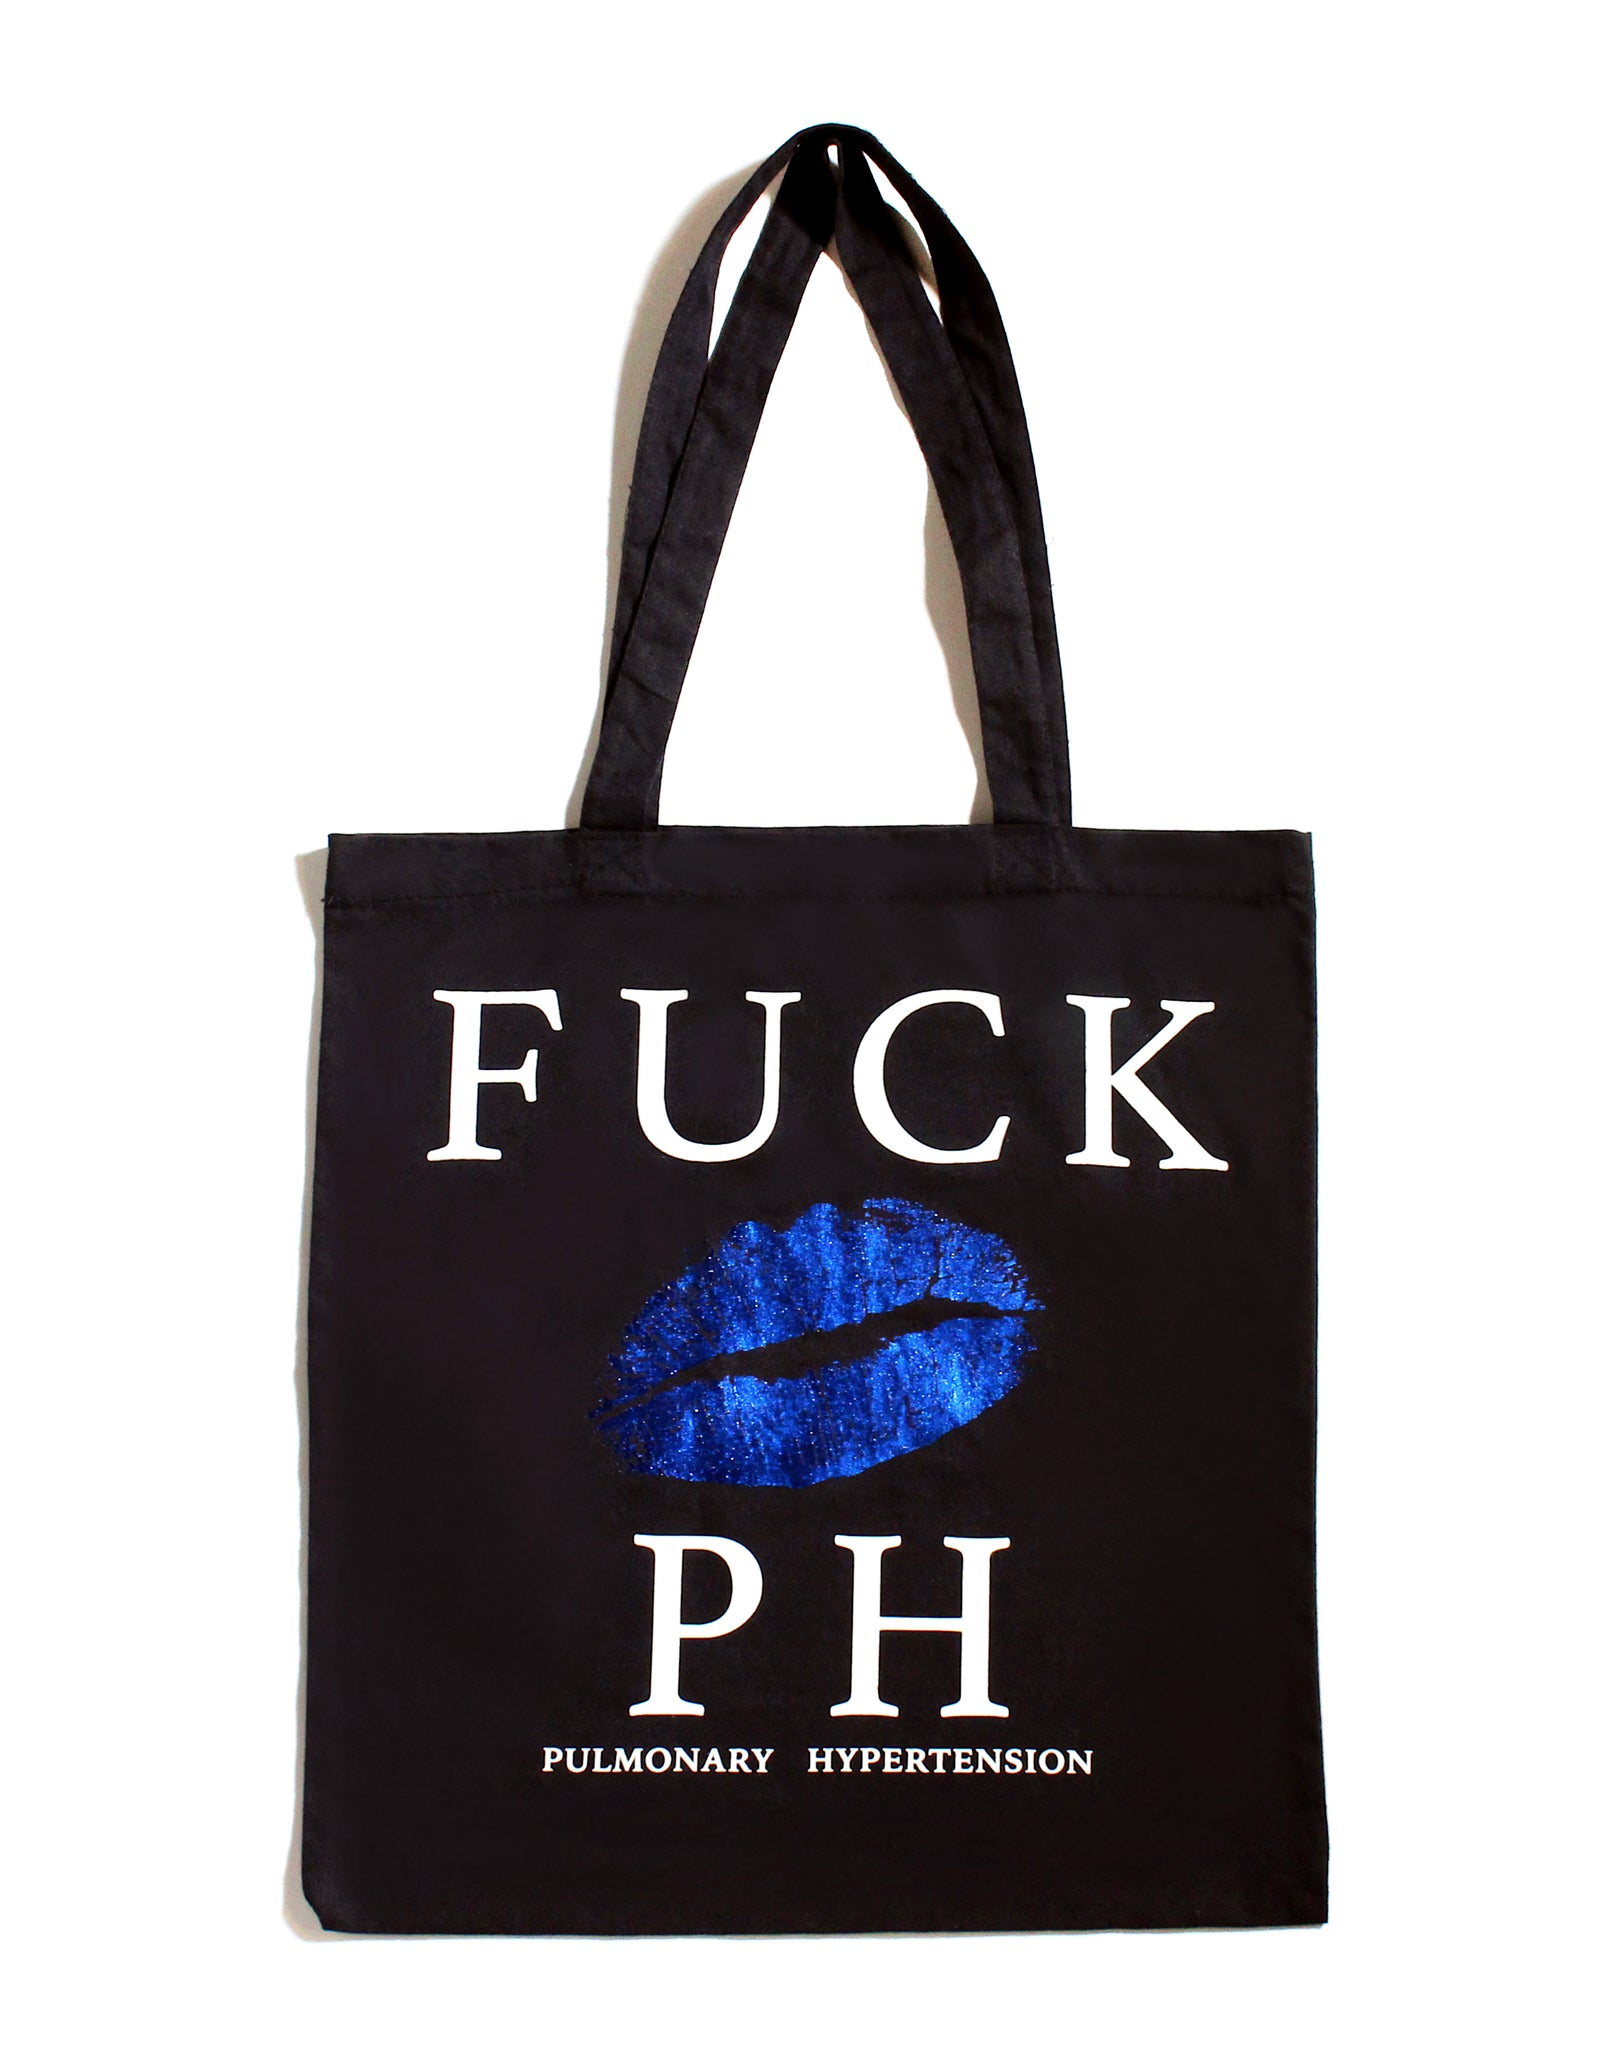 FUCK PH BIG LIPS TOTE BAG | Black